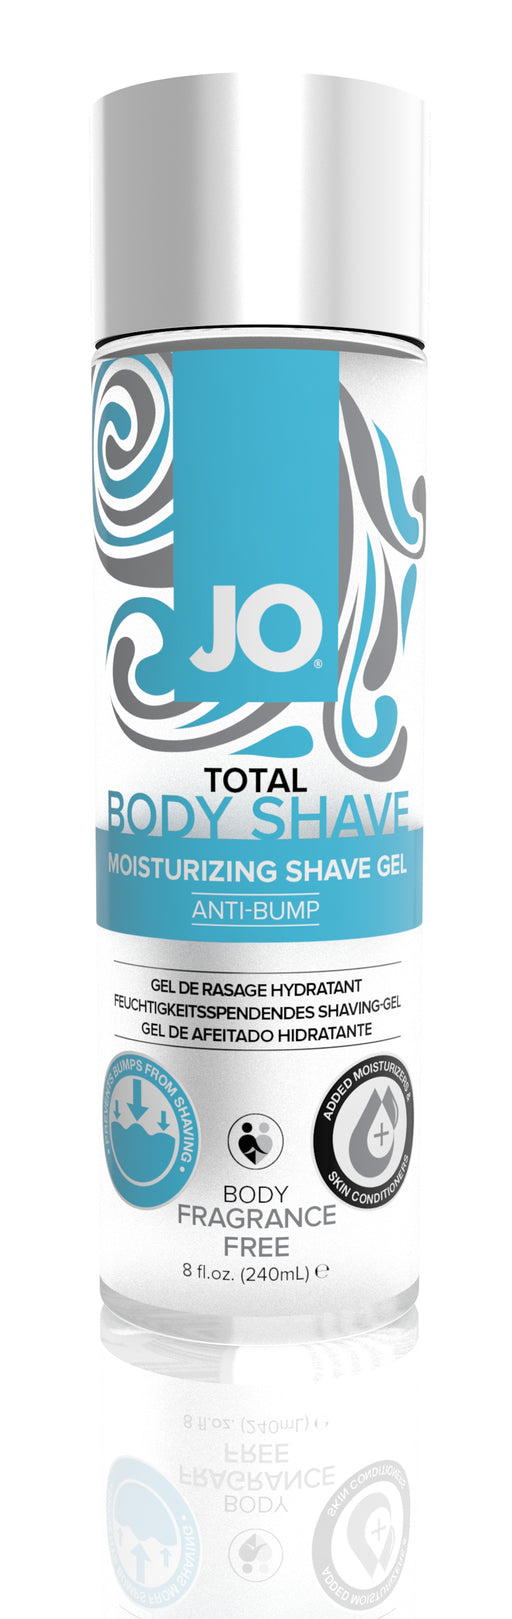 JO Total Body Anti-Bump Shaving Gel Fragrance Free 8 Oz / 240 ml